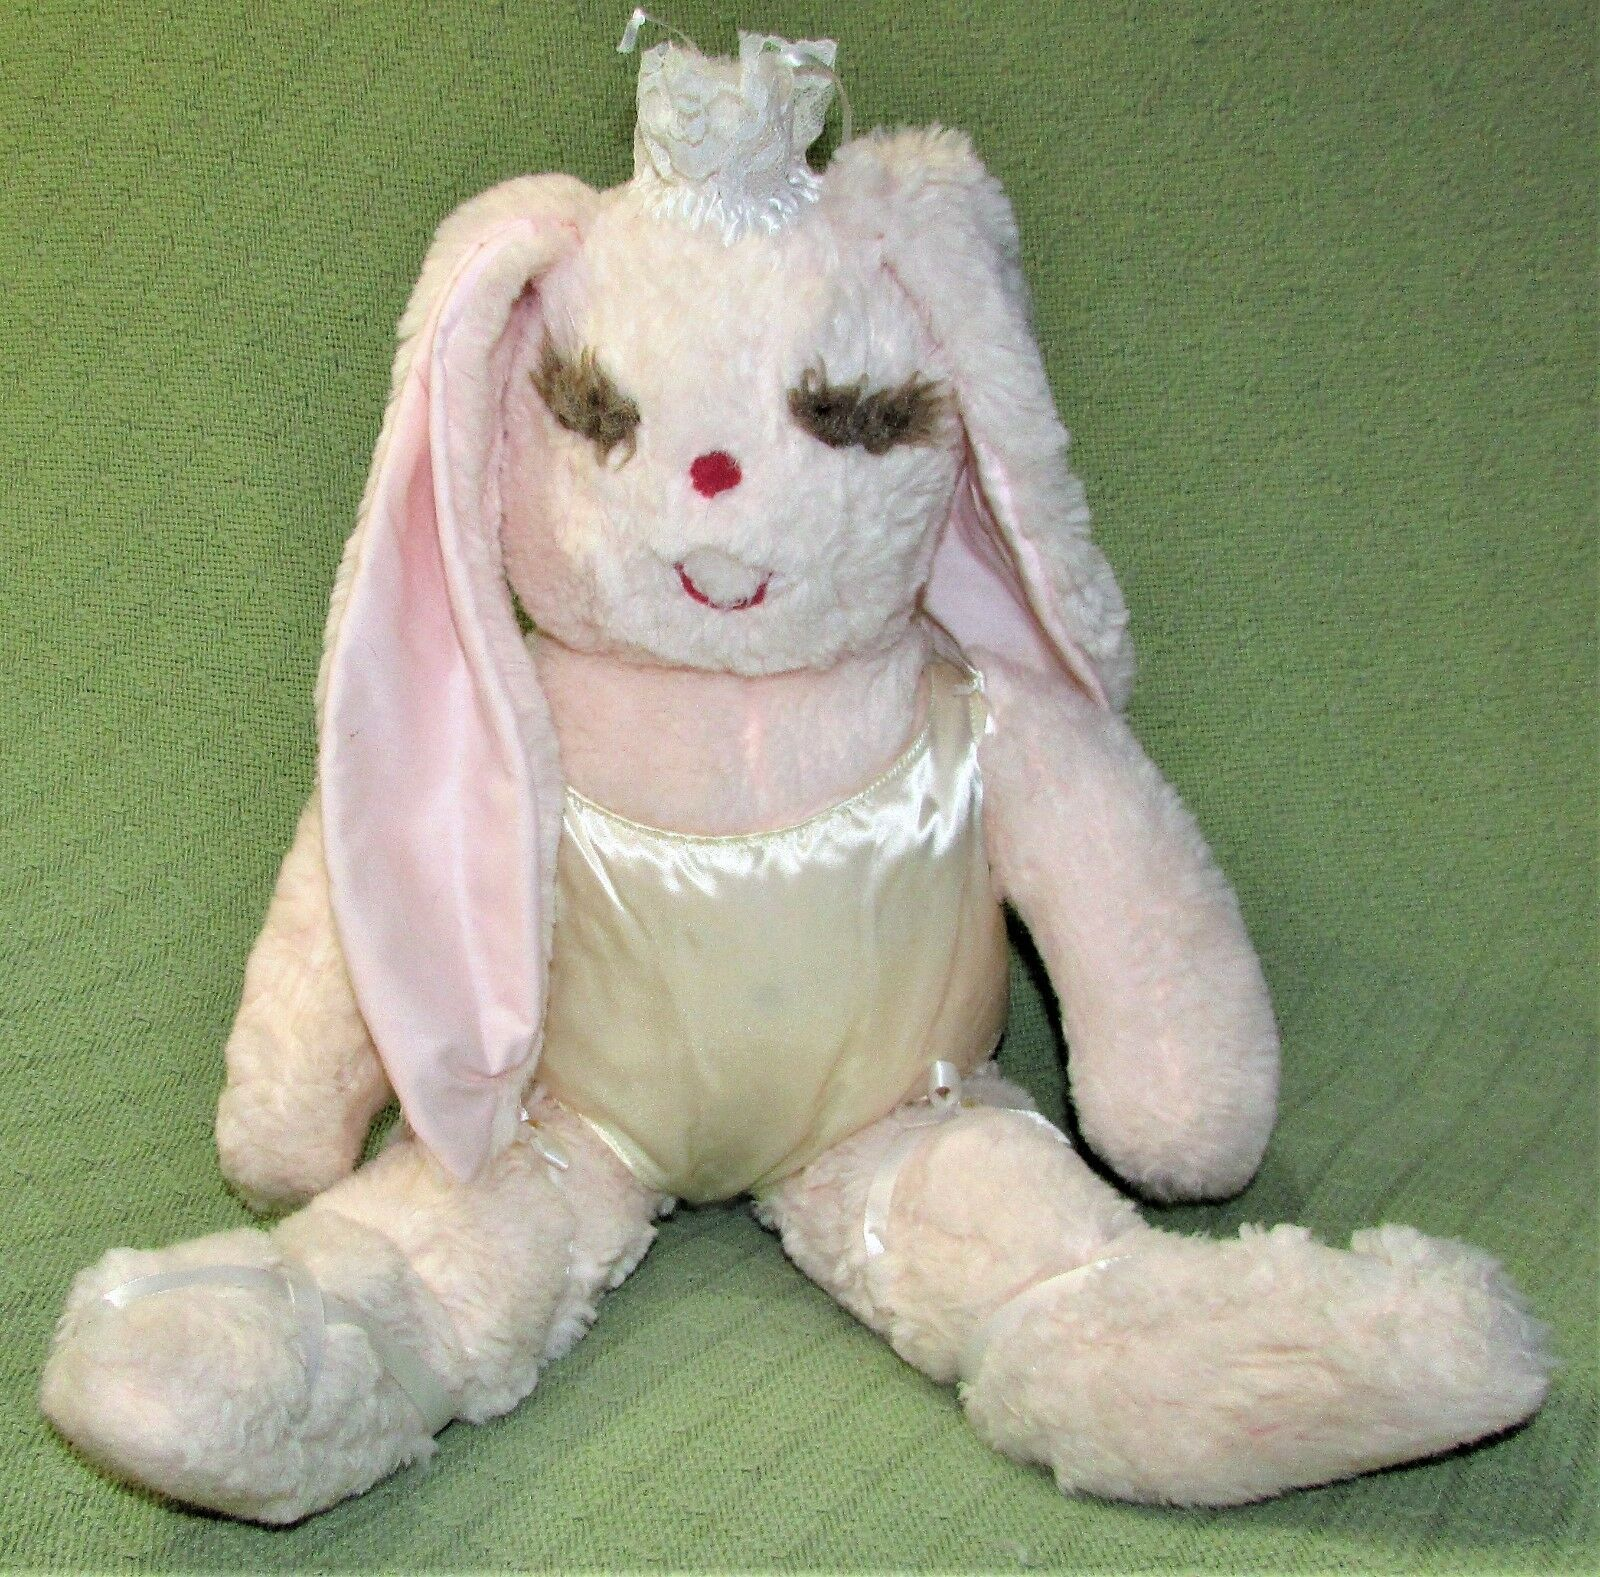 Vintage MS NOAH BALLERINA BUNNY Rosa Plush DOLL Stuffed Animal 22